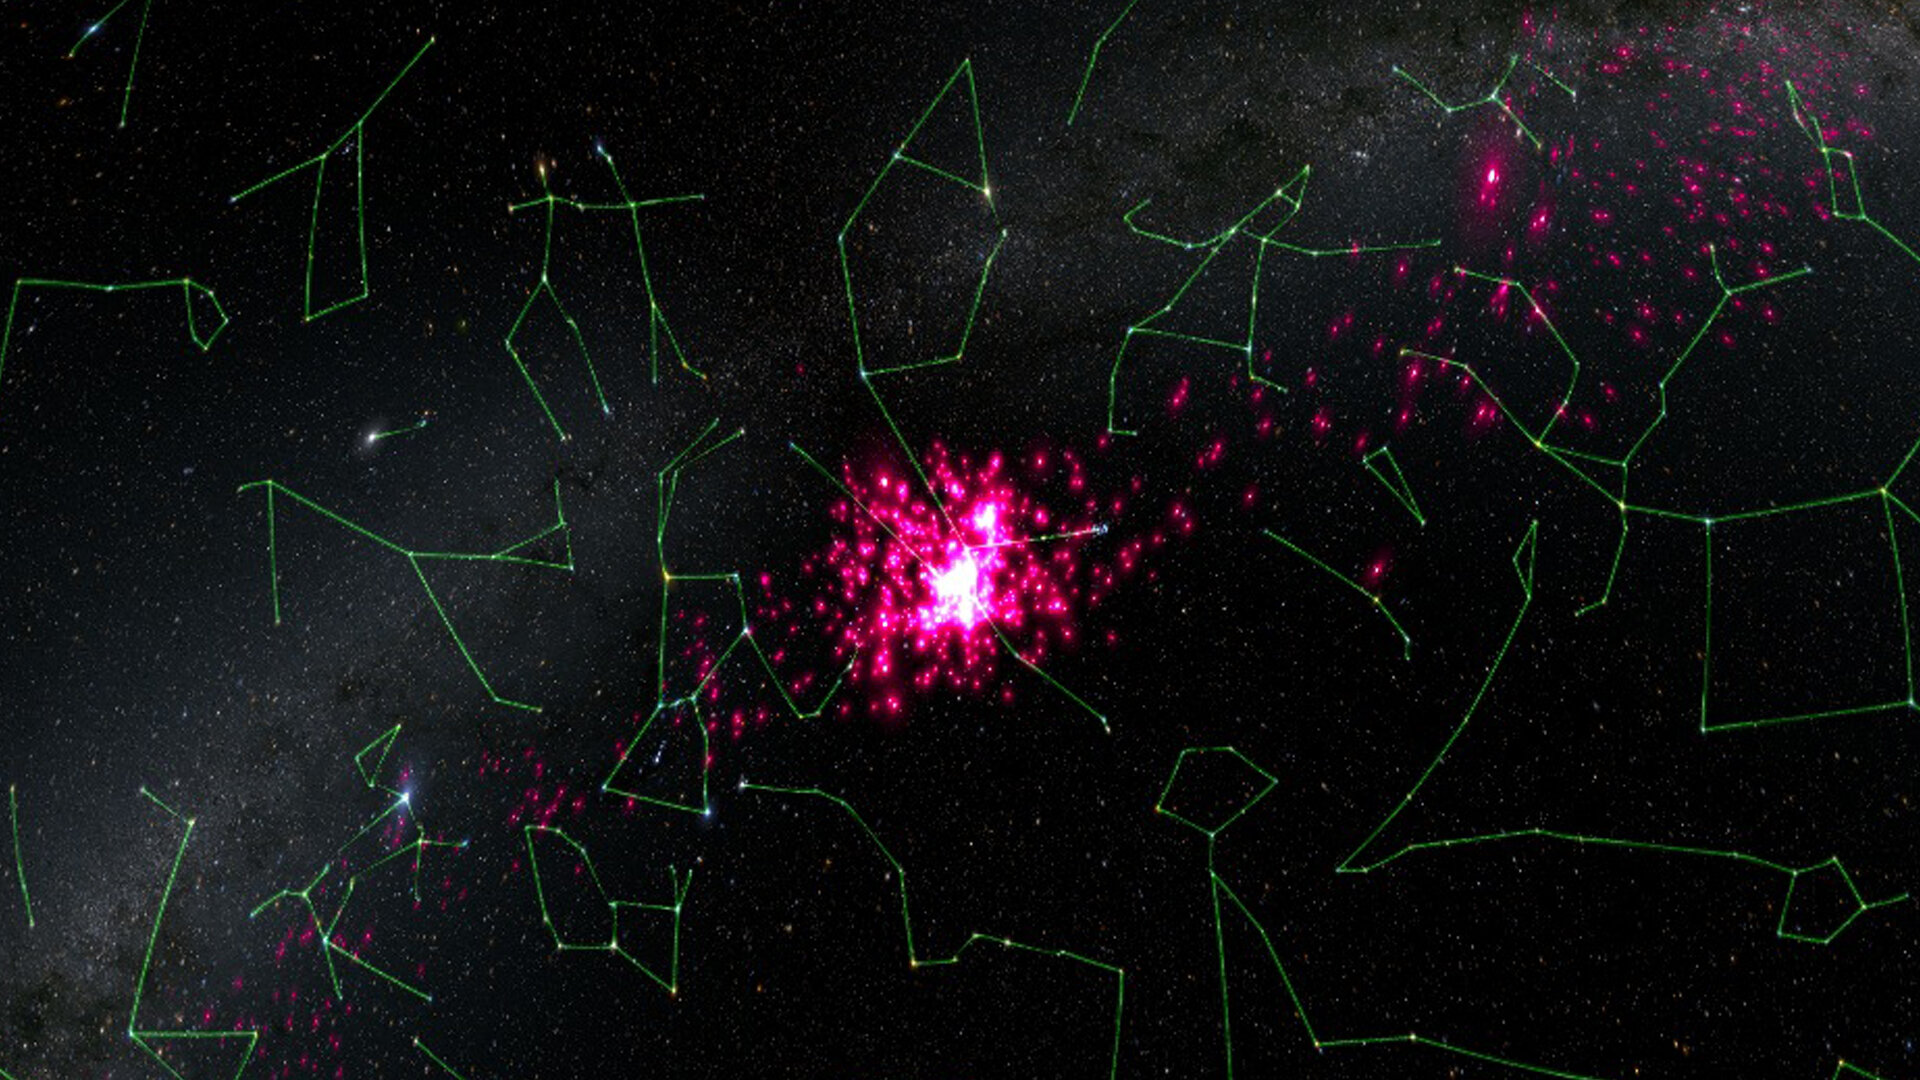 A 'lump' of darkish matter could also be ripping aside Taurus' face jkmPo3BndyC43jd5DAwSXB